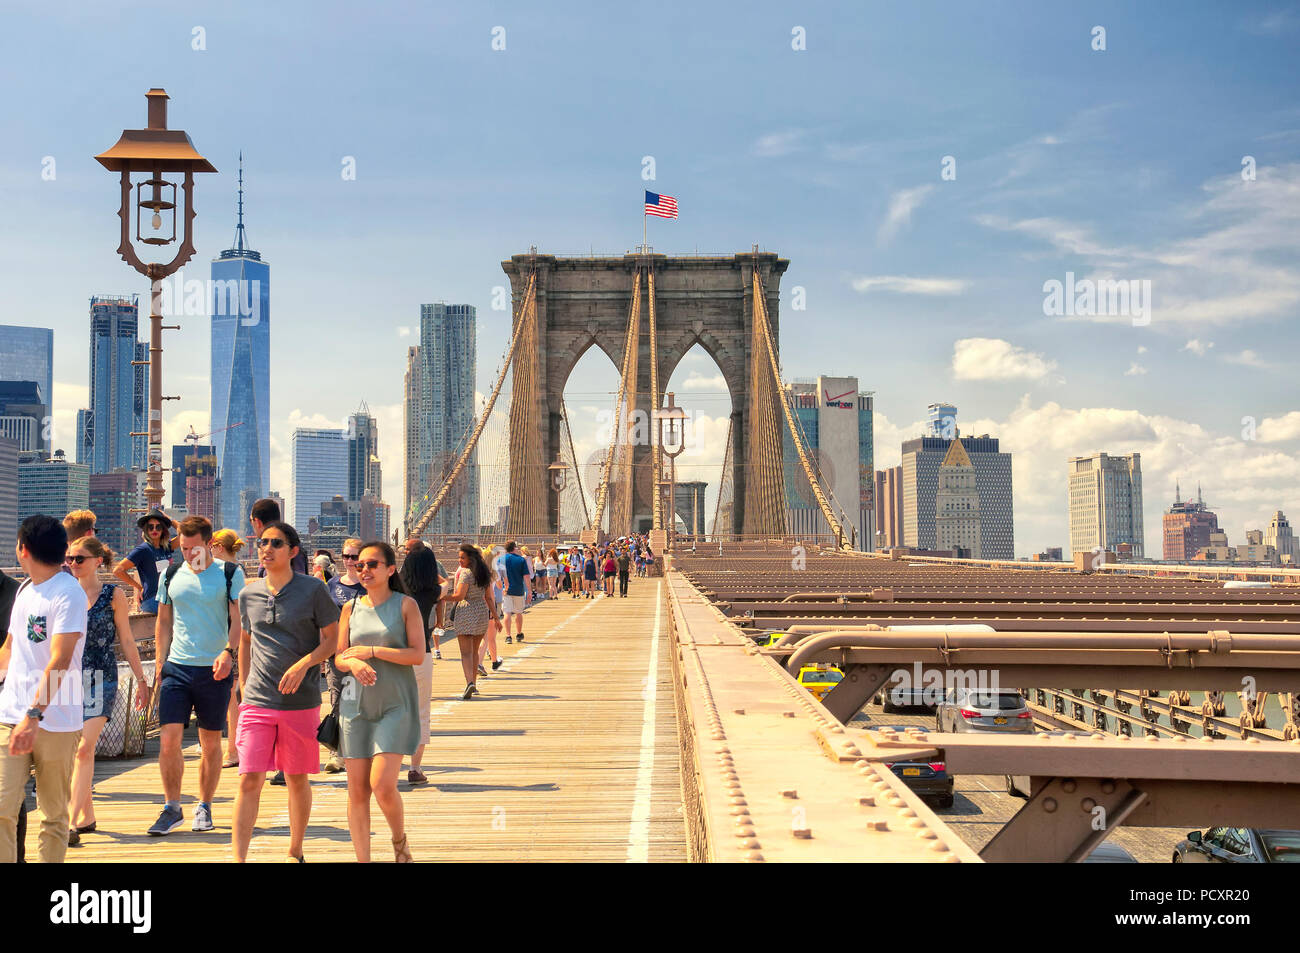 June 10, 2017.  New York City, New York.  Tourists and Traffic on the brooklyn bridge and the new york city skyline on a sunny day in the summertime. - Stock Image